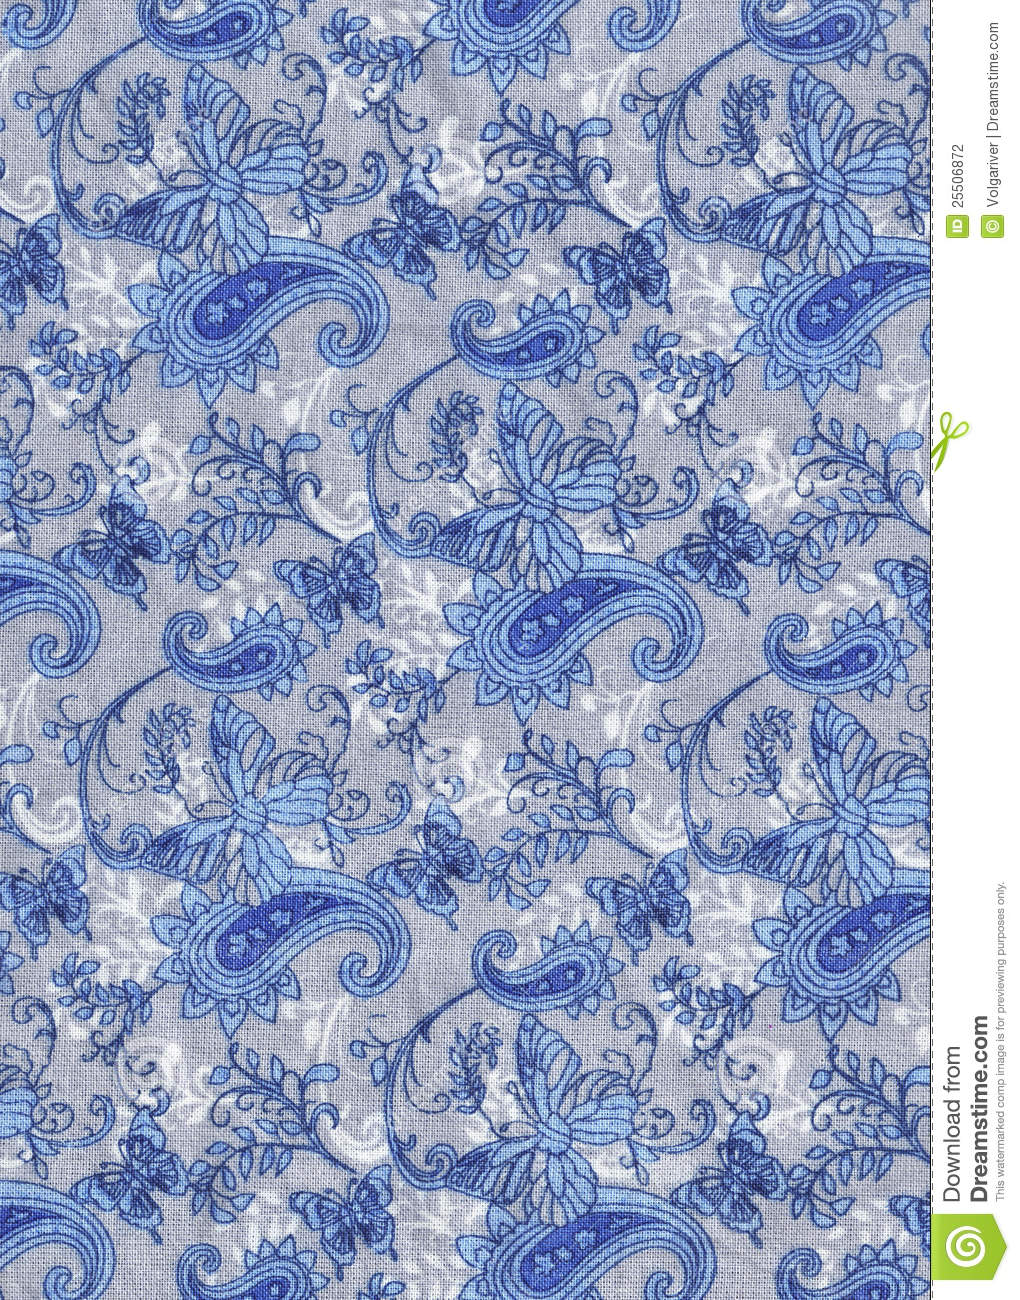 Blue And Gray Fabric Background Stock Photography - Image: 25506872